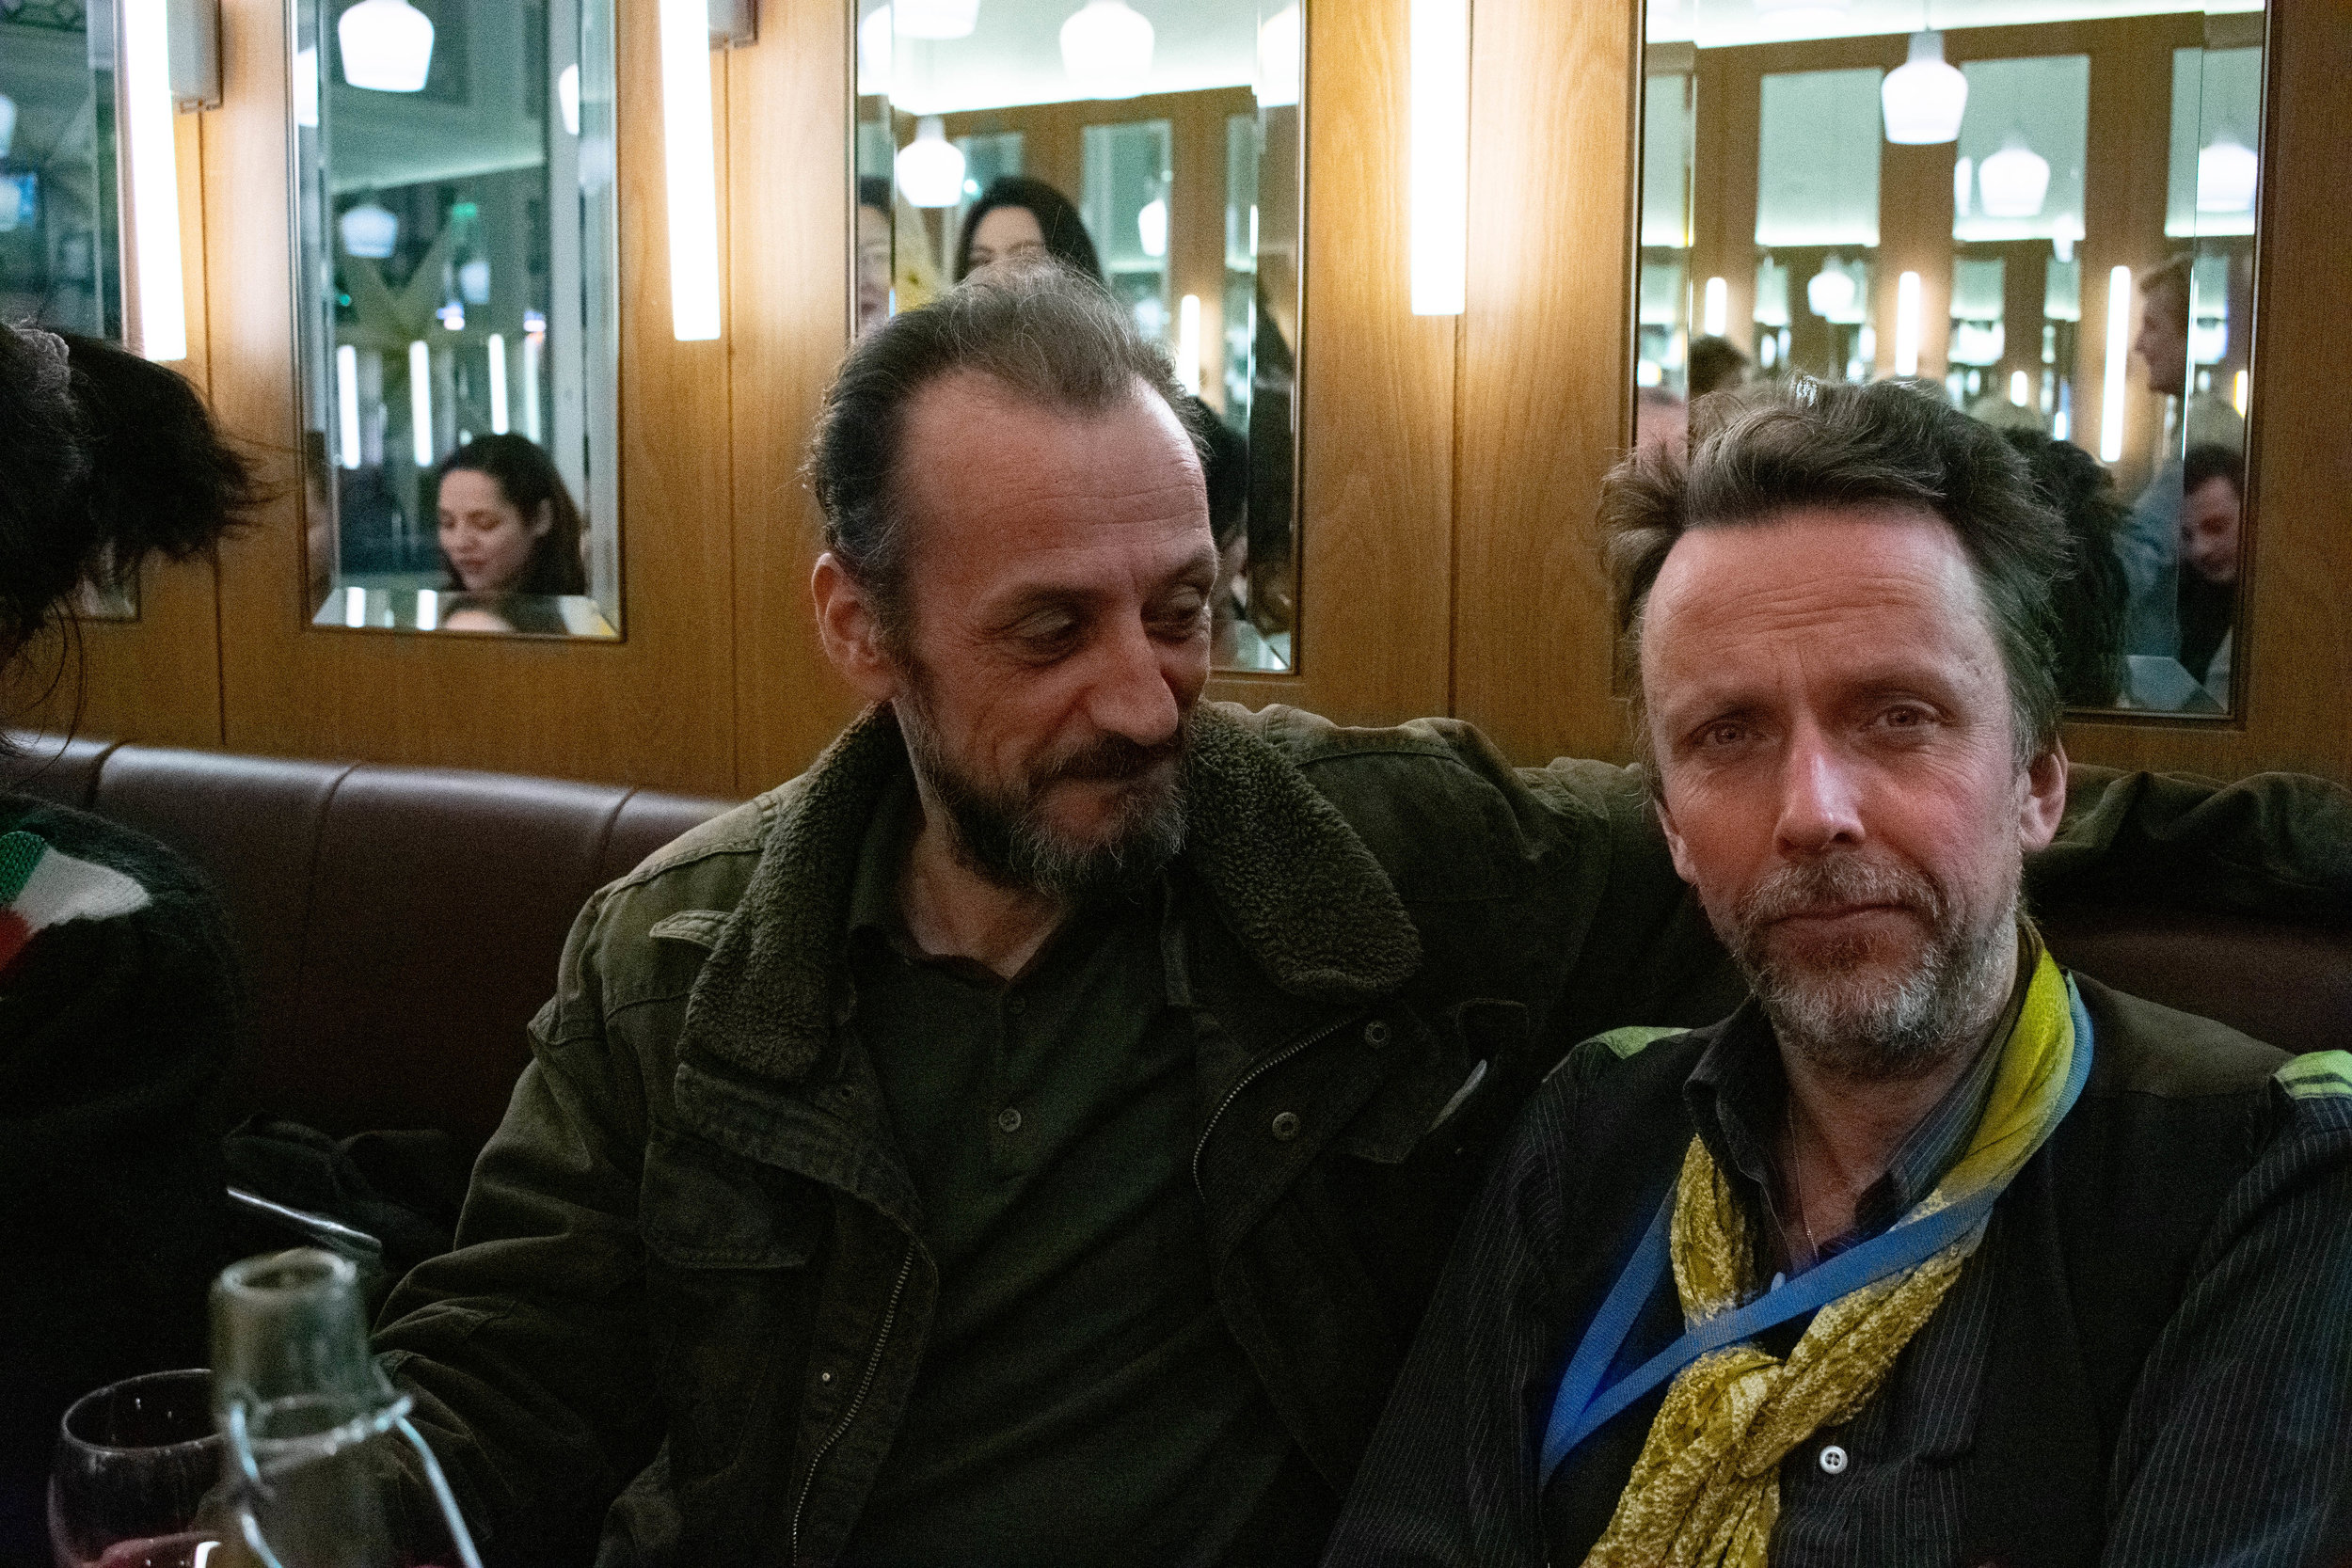 Afterparty. Whitechapel Gallery's Film Curator Gareth Evans with his frequent collaborator, Louis Benassi. Photo by Zula Ra